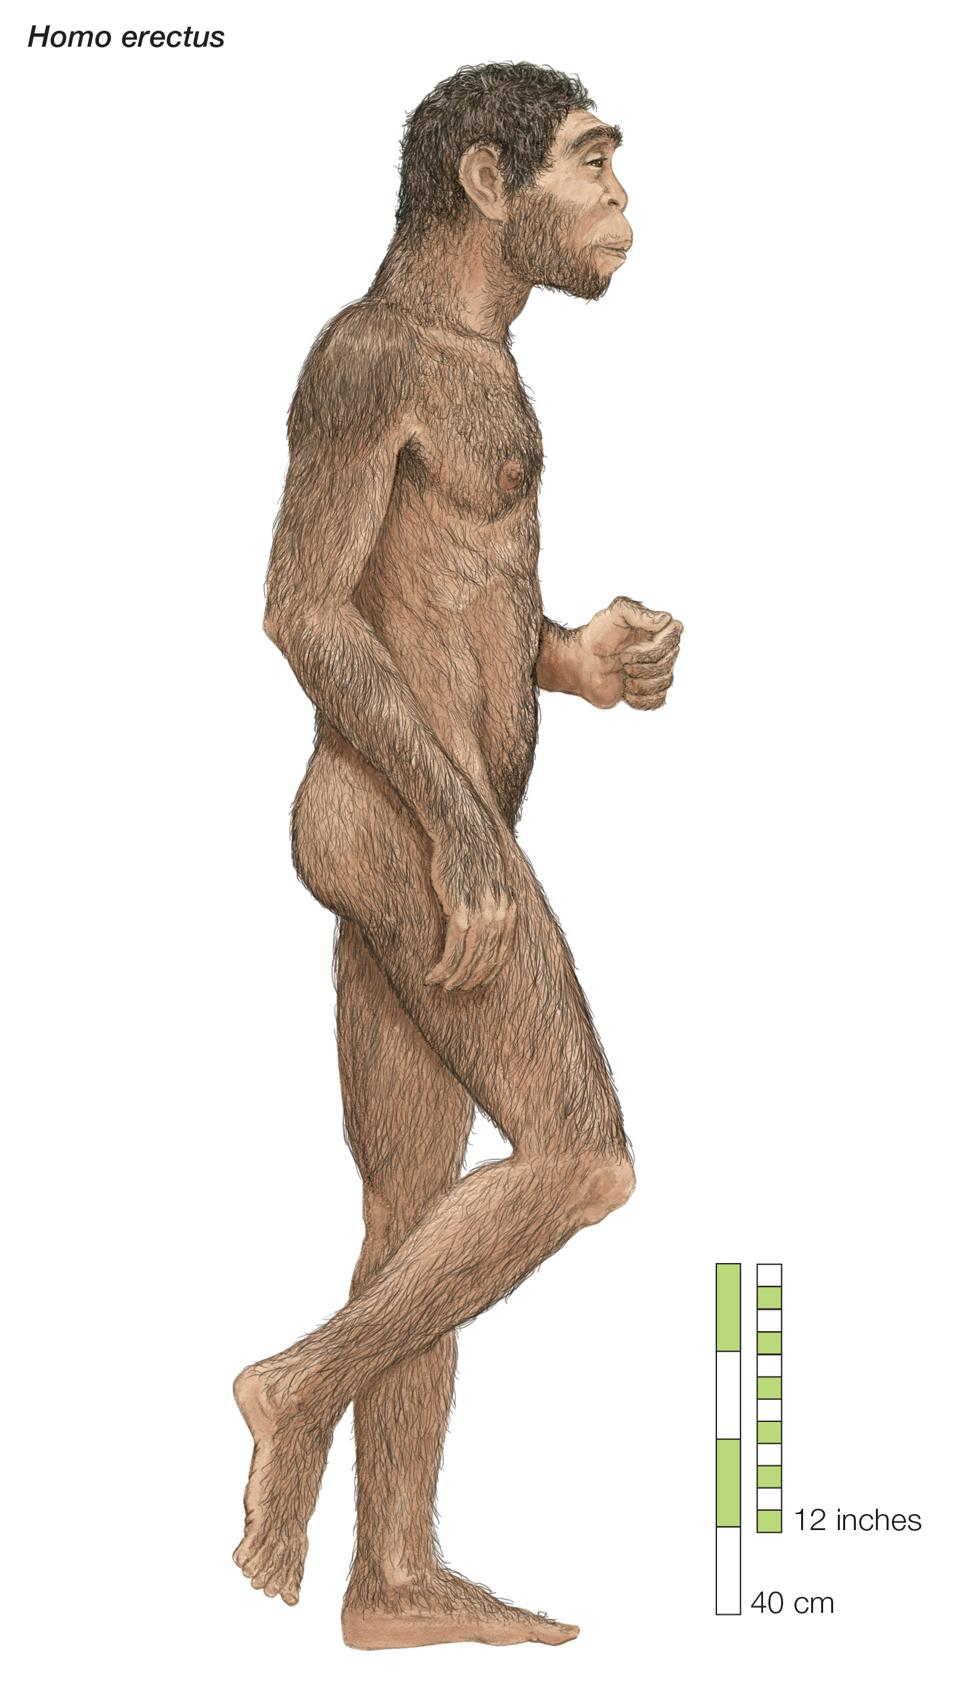 Homo Erectus, ″Upright Man,″ Which Lived From Approximately 1,700,000 To 200,000 Years Ago.